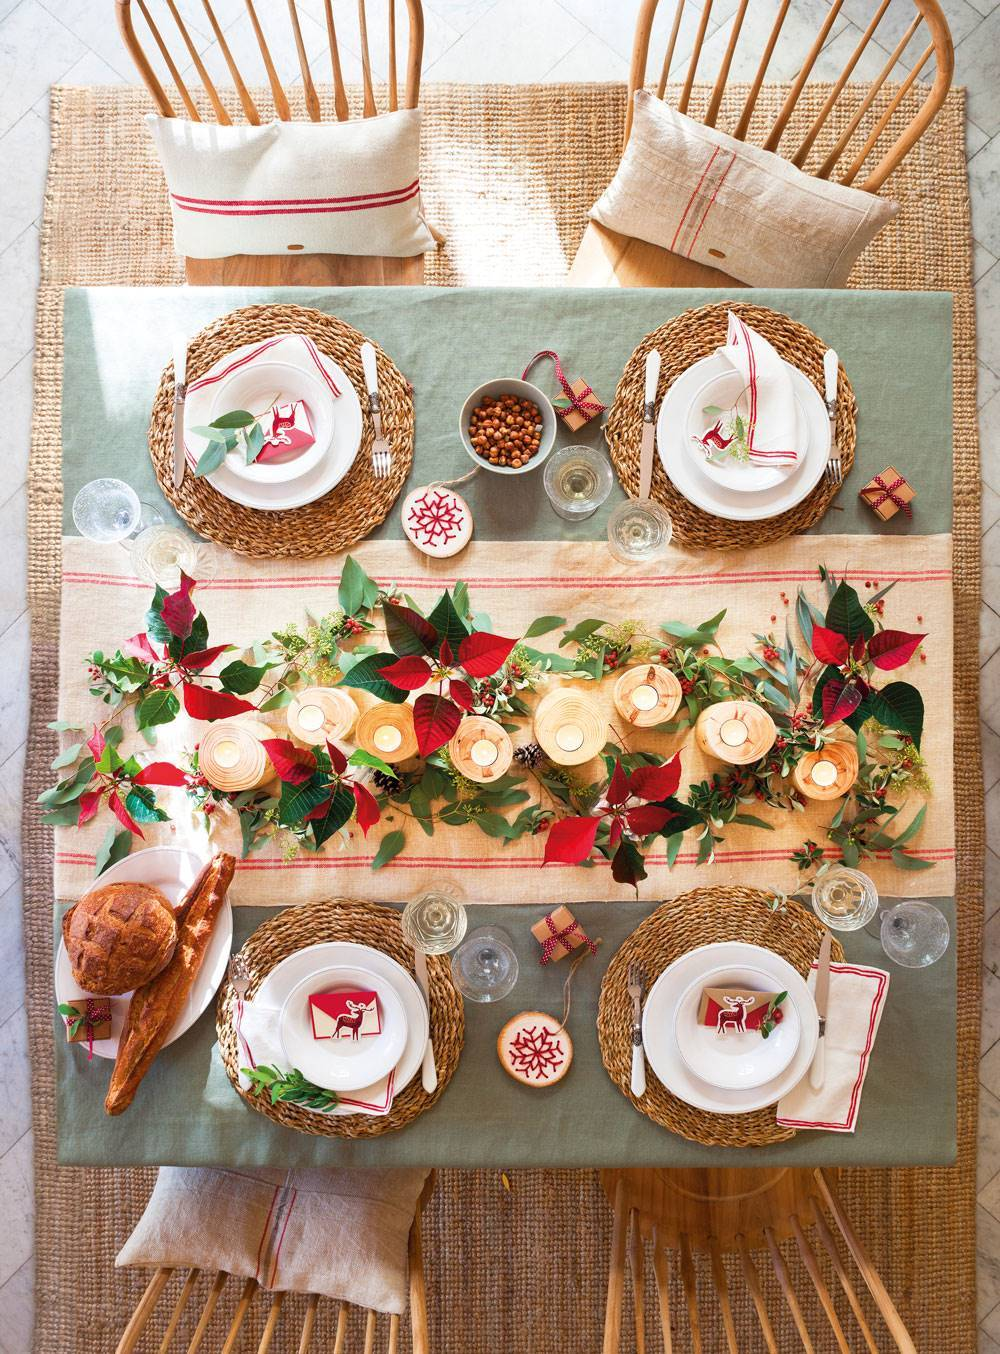 WITH POINSETTIAS AND RUSTIC AIRS